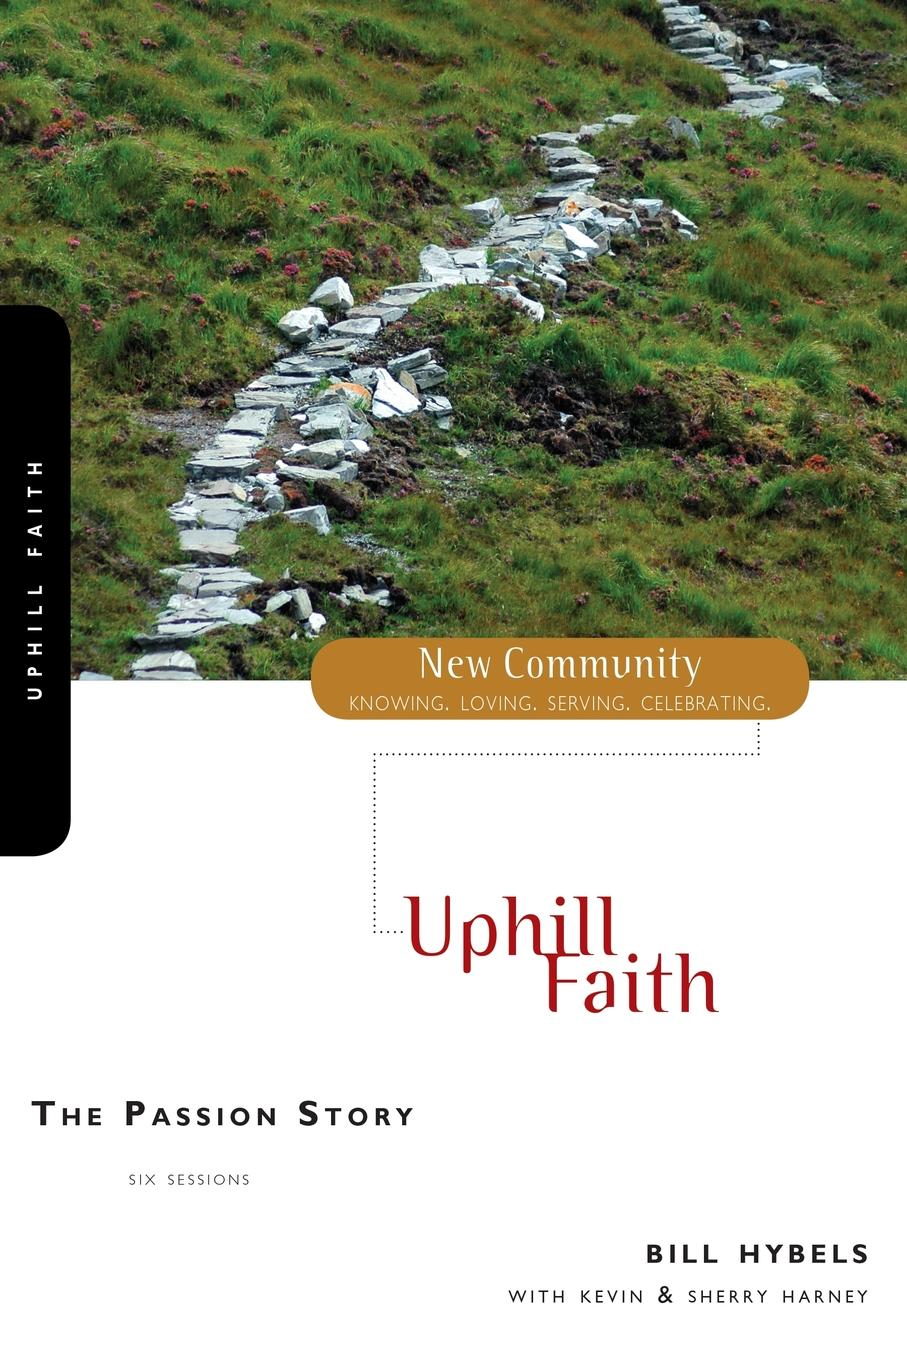 Bill Hybels The Passion Story. Uphill Faith bill hybels sermon on the mount 1 connect with god